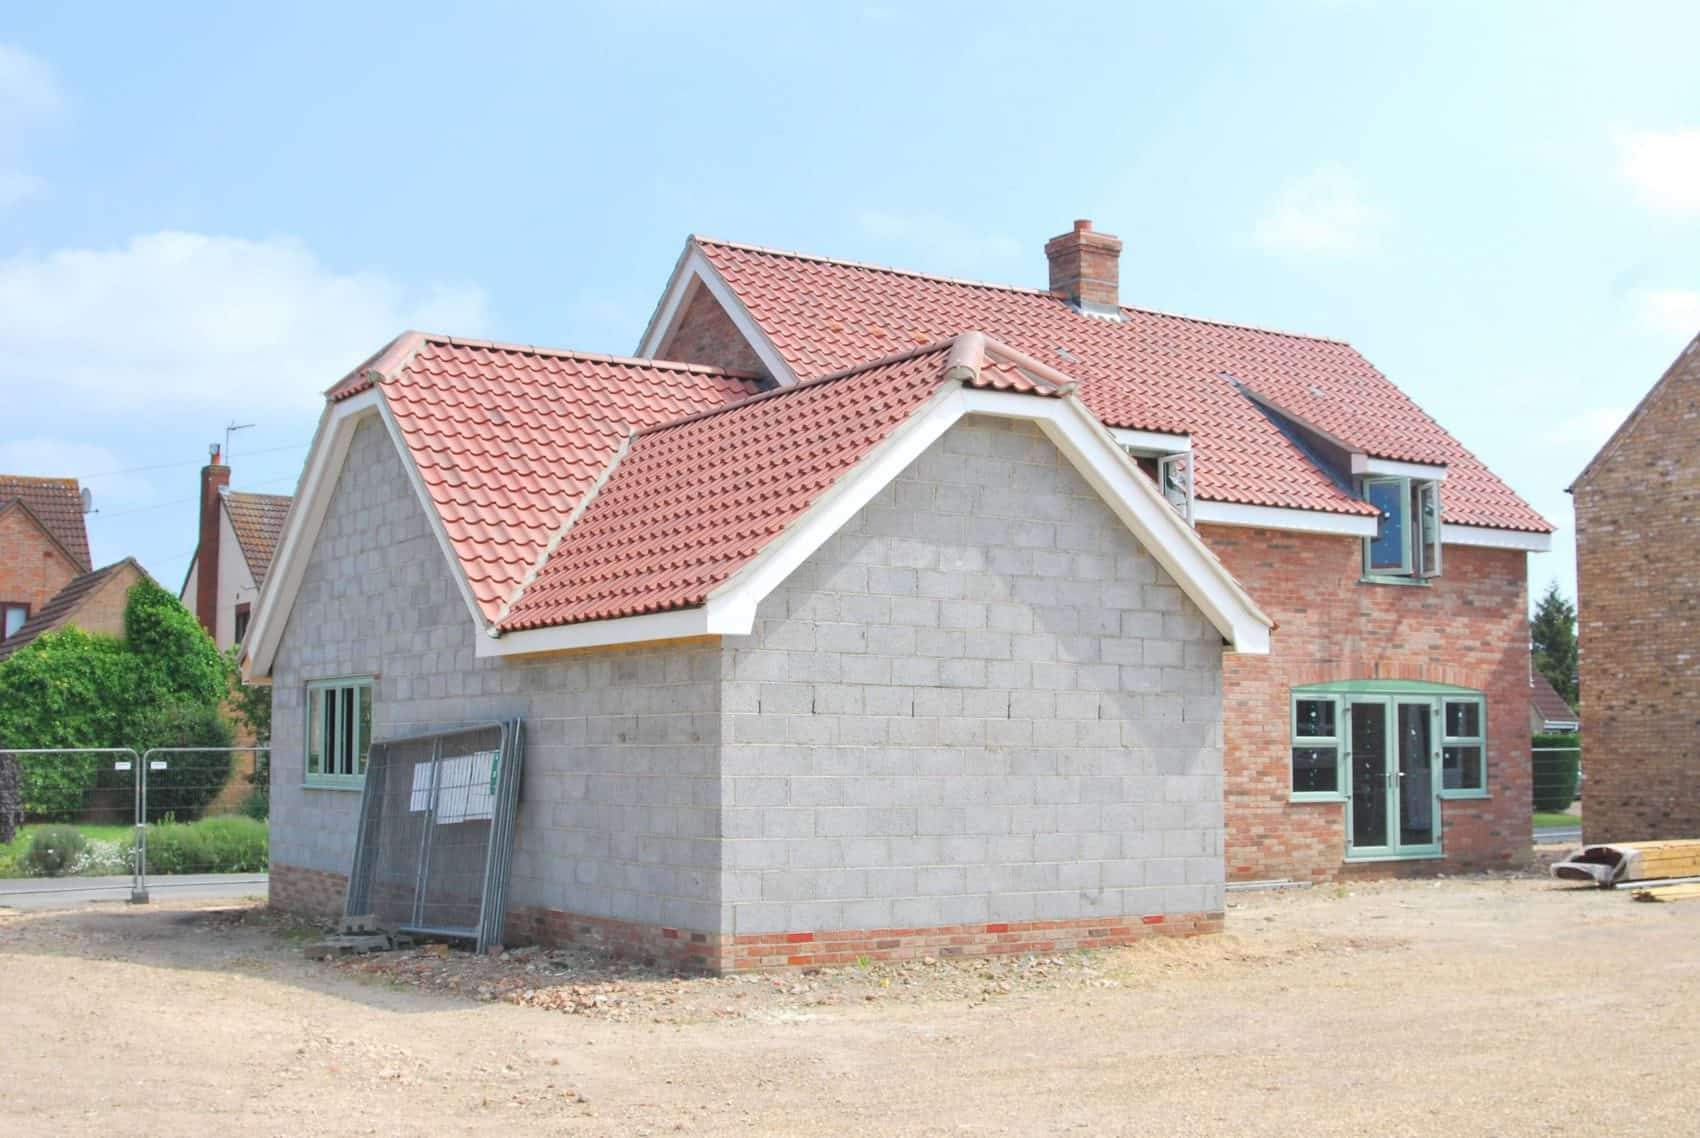 upward-barn conversions-traditional build-plot5-13